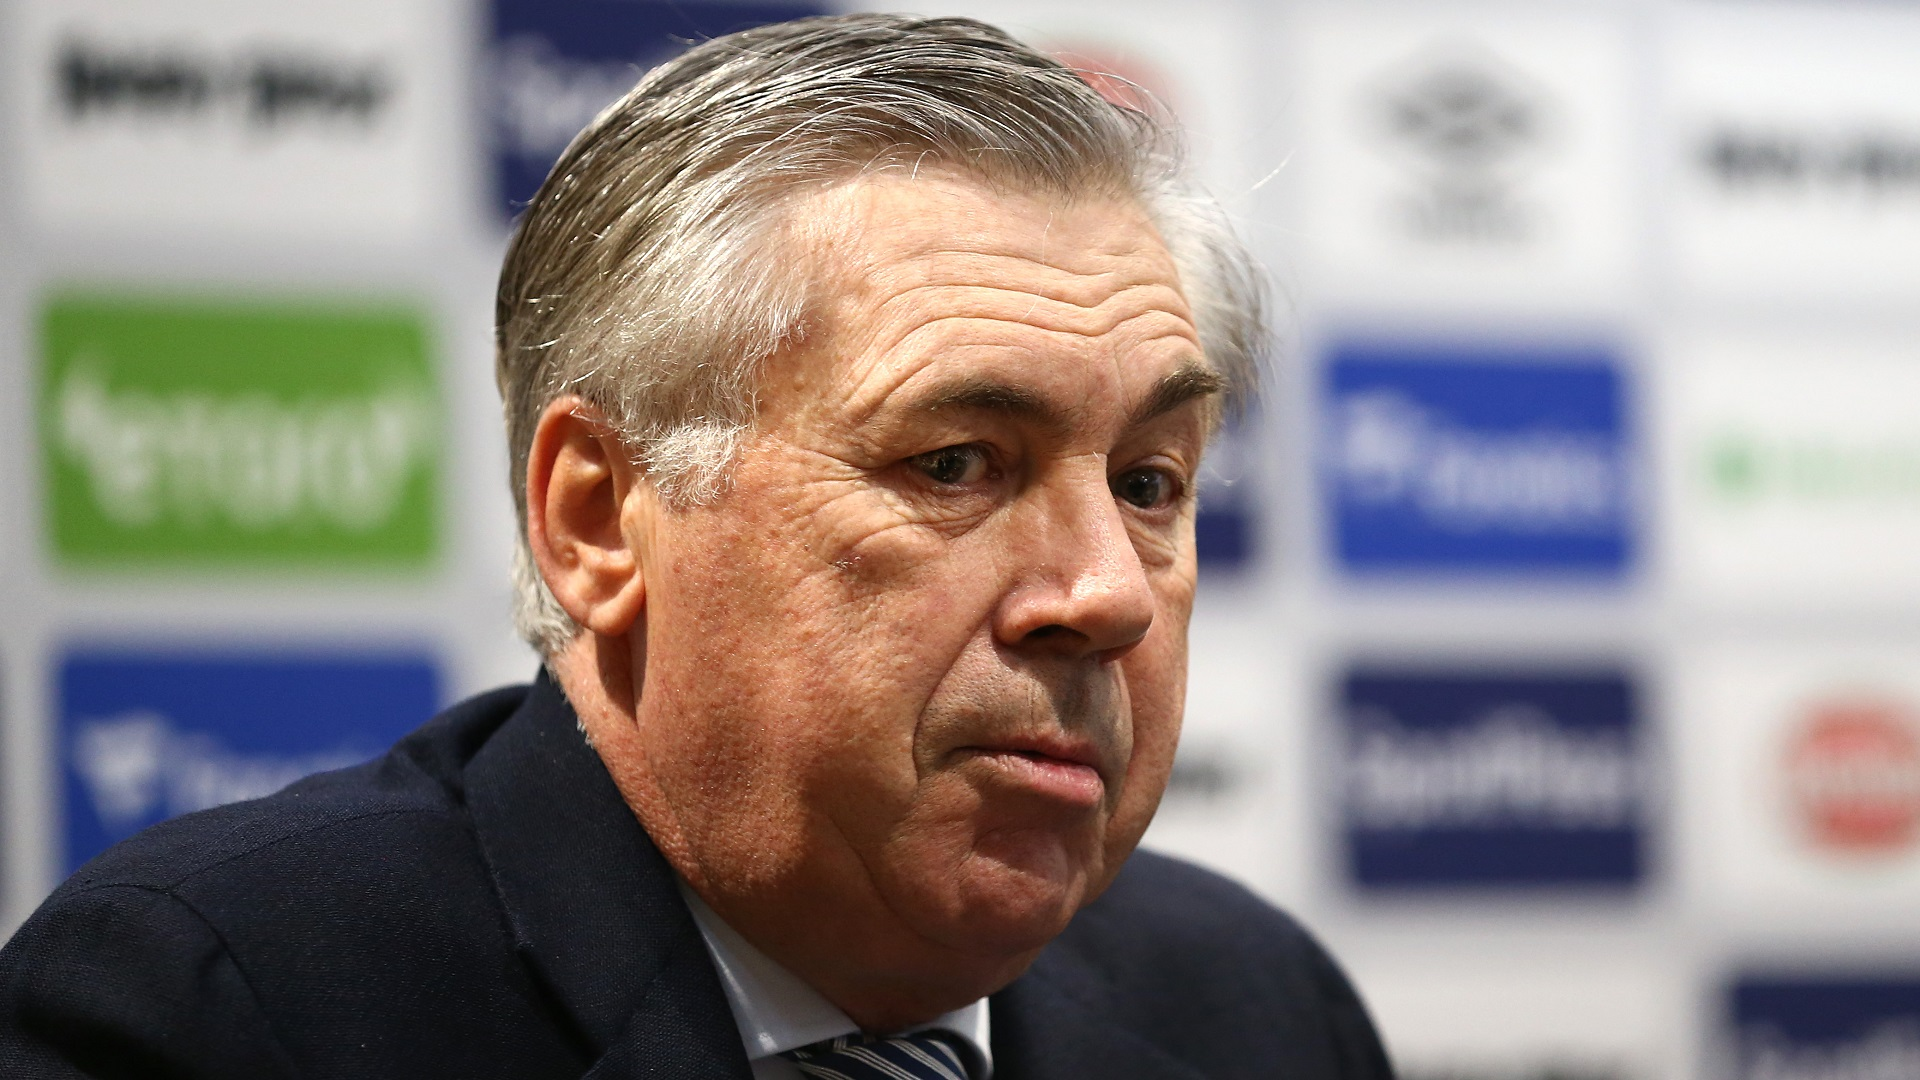 Ancelotti has winning start at Everton